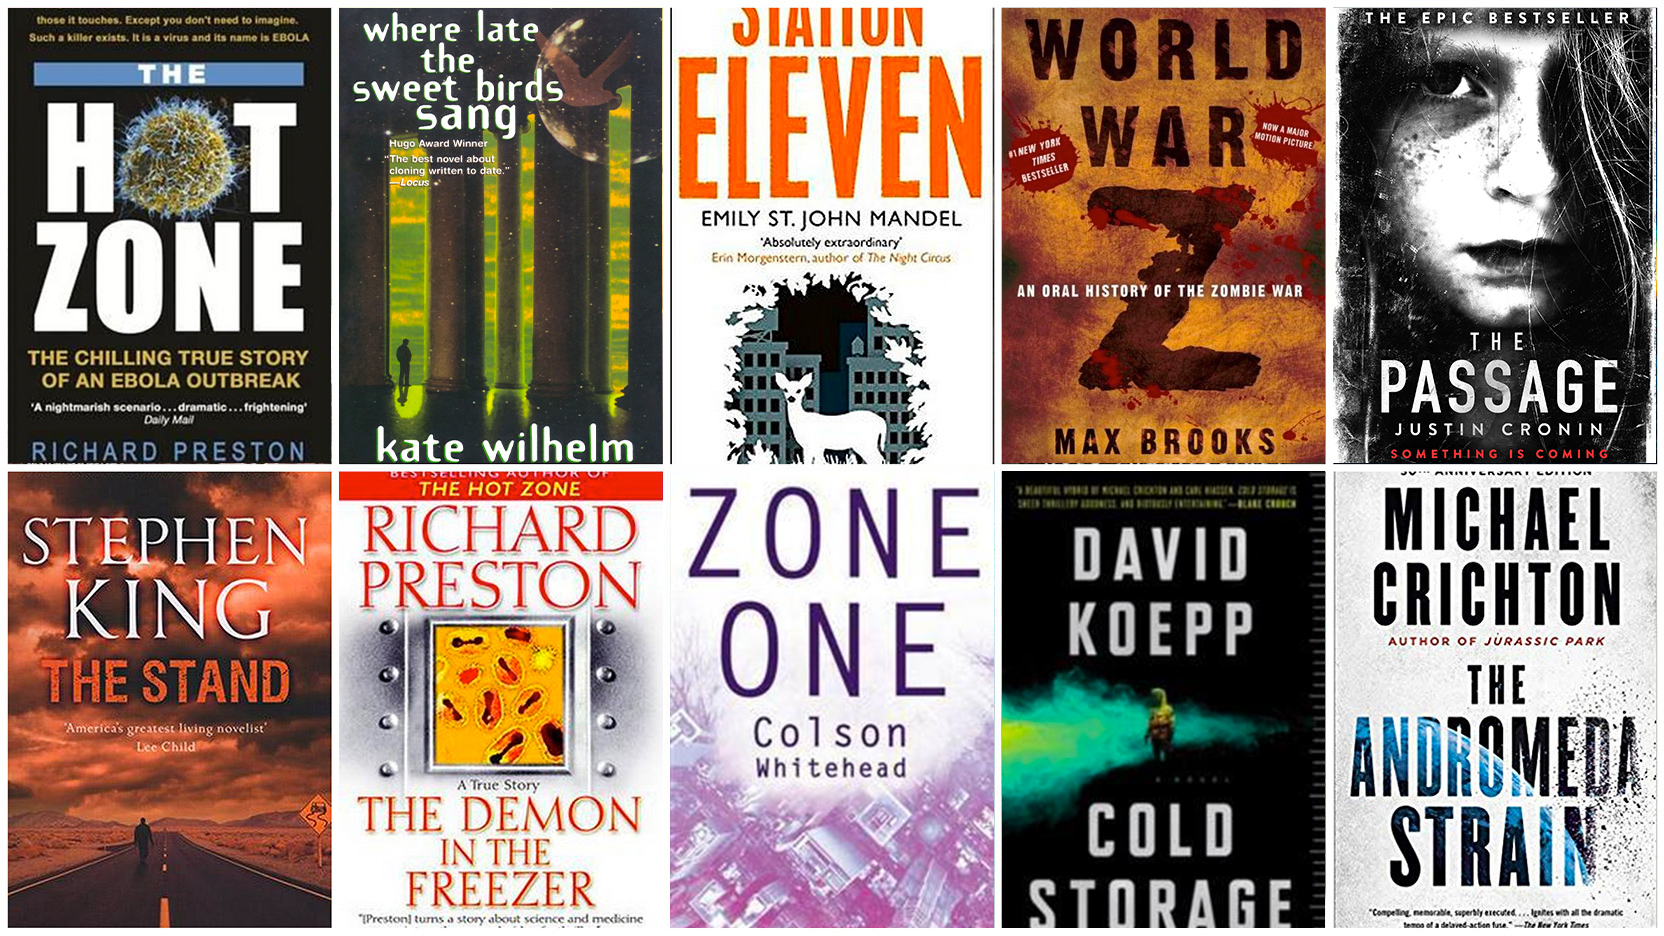 10 read-worthy books on the theme of viruses or infectious disease